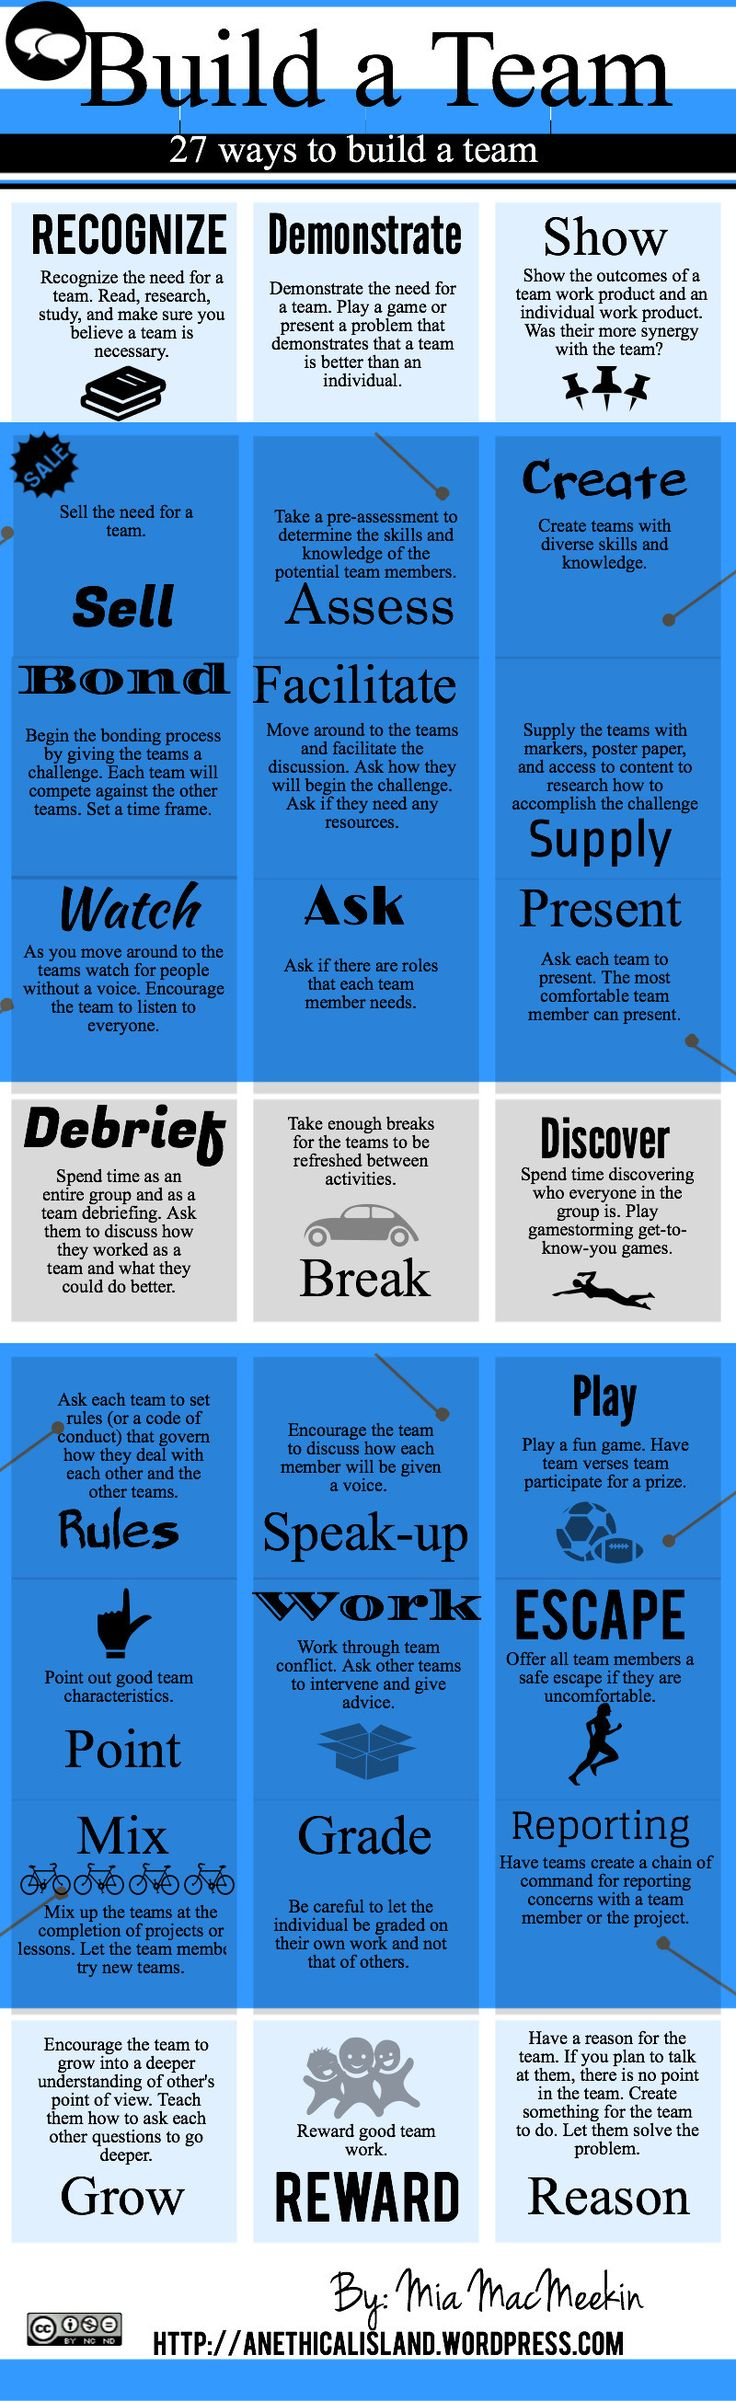 "Infographic The collaborative opportunities that the web offers can easily be mirrored within the four walls of the classroom.  We should provide students with the right environment where they can work in teams and mentor each other. Mia from the ""anethicalisland"" site has this great visual featuring 27 tips for teachers to boost team work in class."